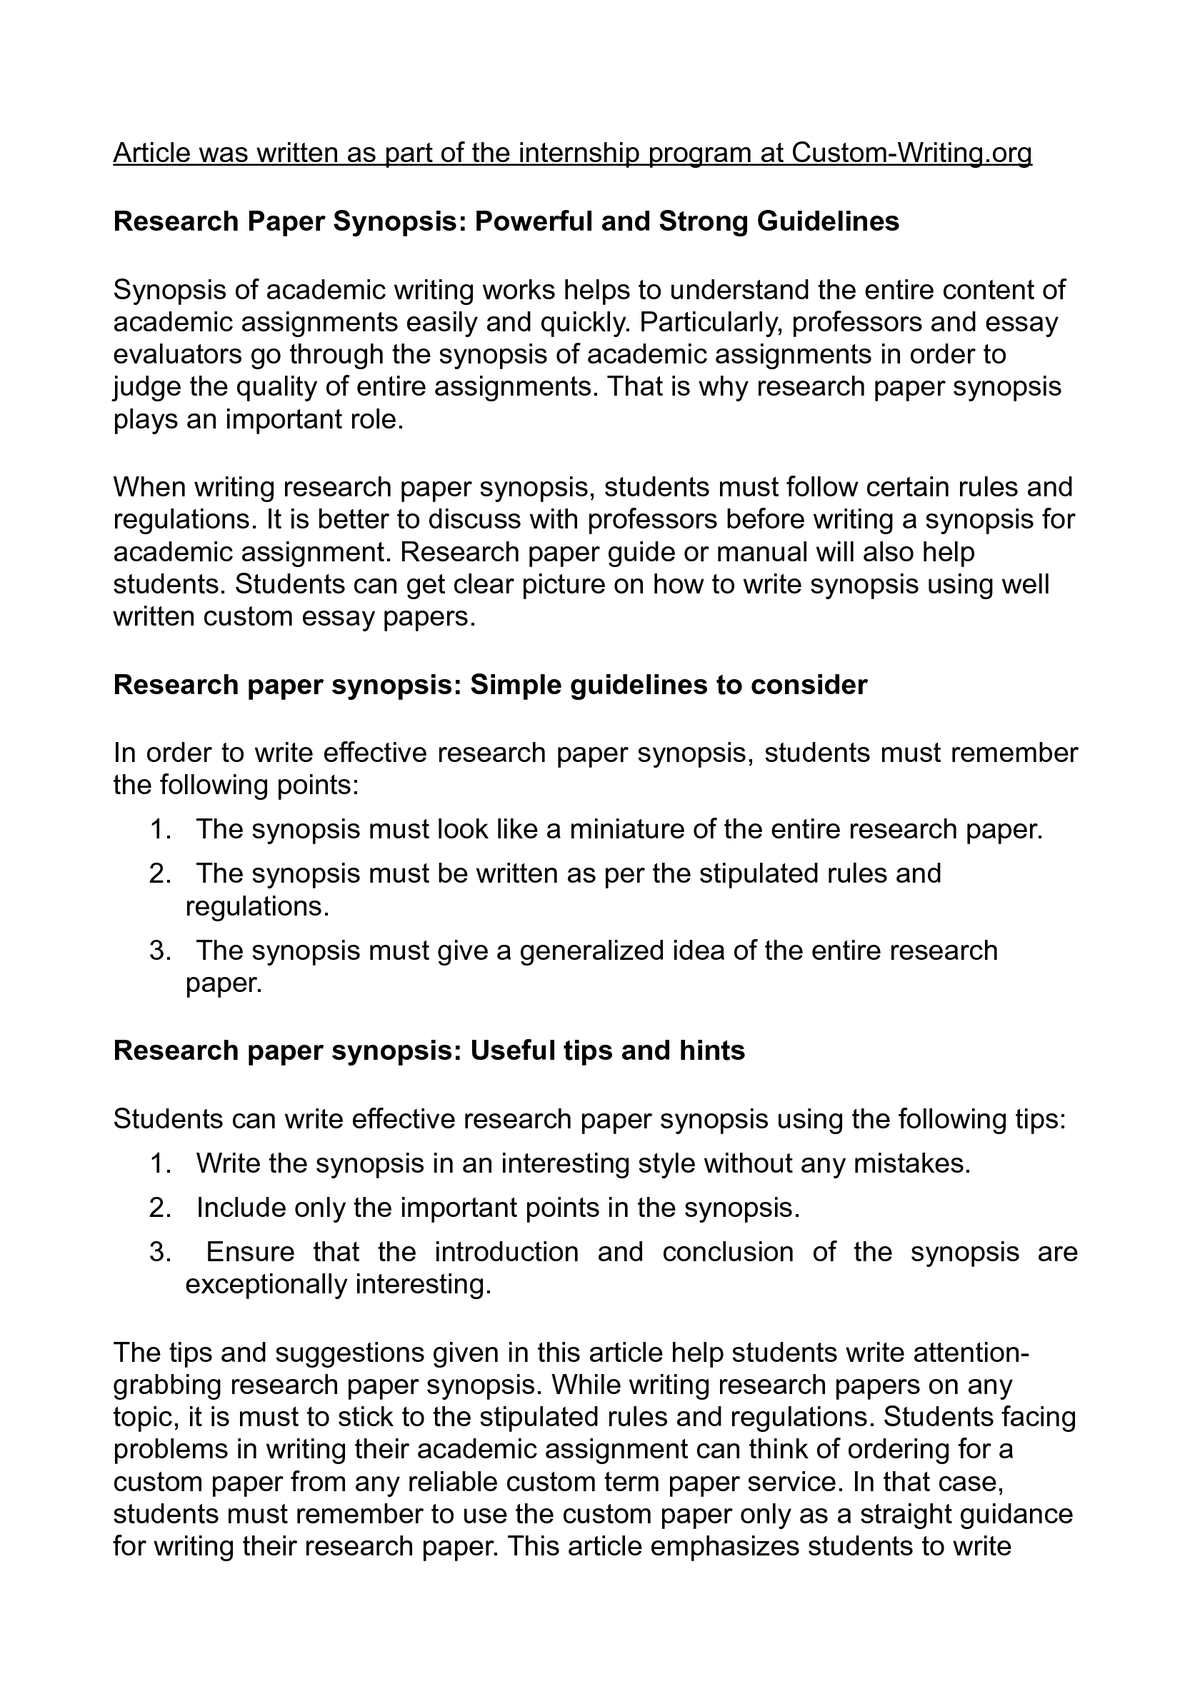 calamo  research paper synopsis powerful and strong guidelines research paper synopsis powerful and strong guidelines